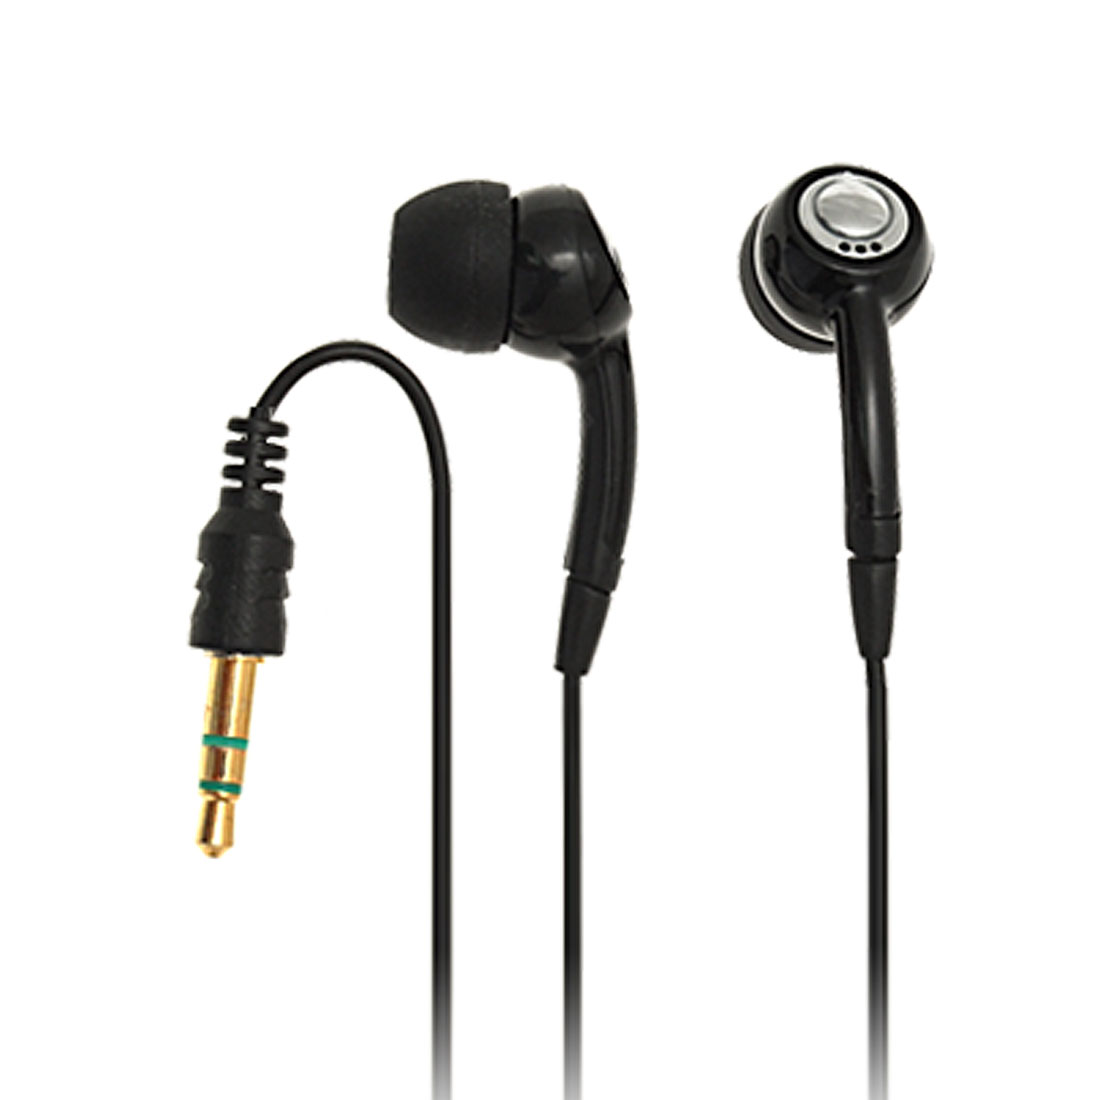 In-ear Handsfree Headphone Earphone for iPhone 3G Black